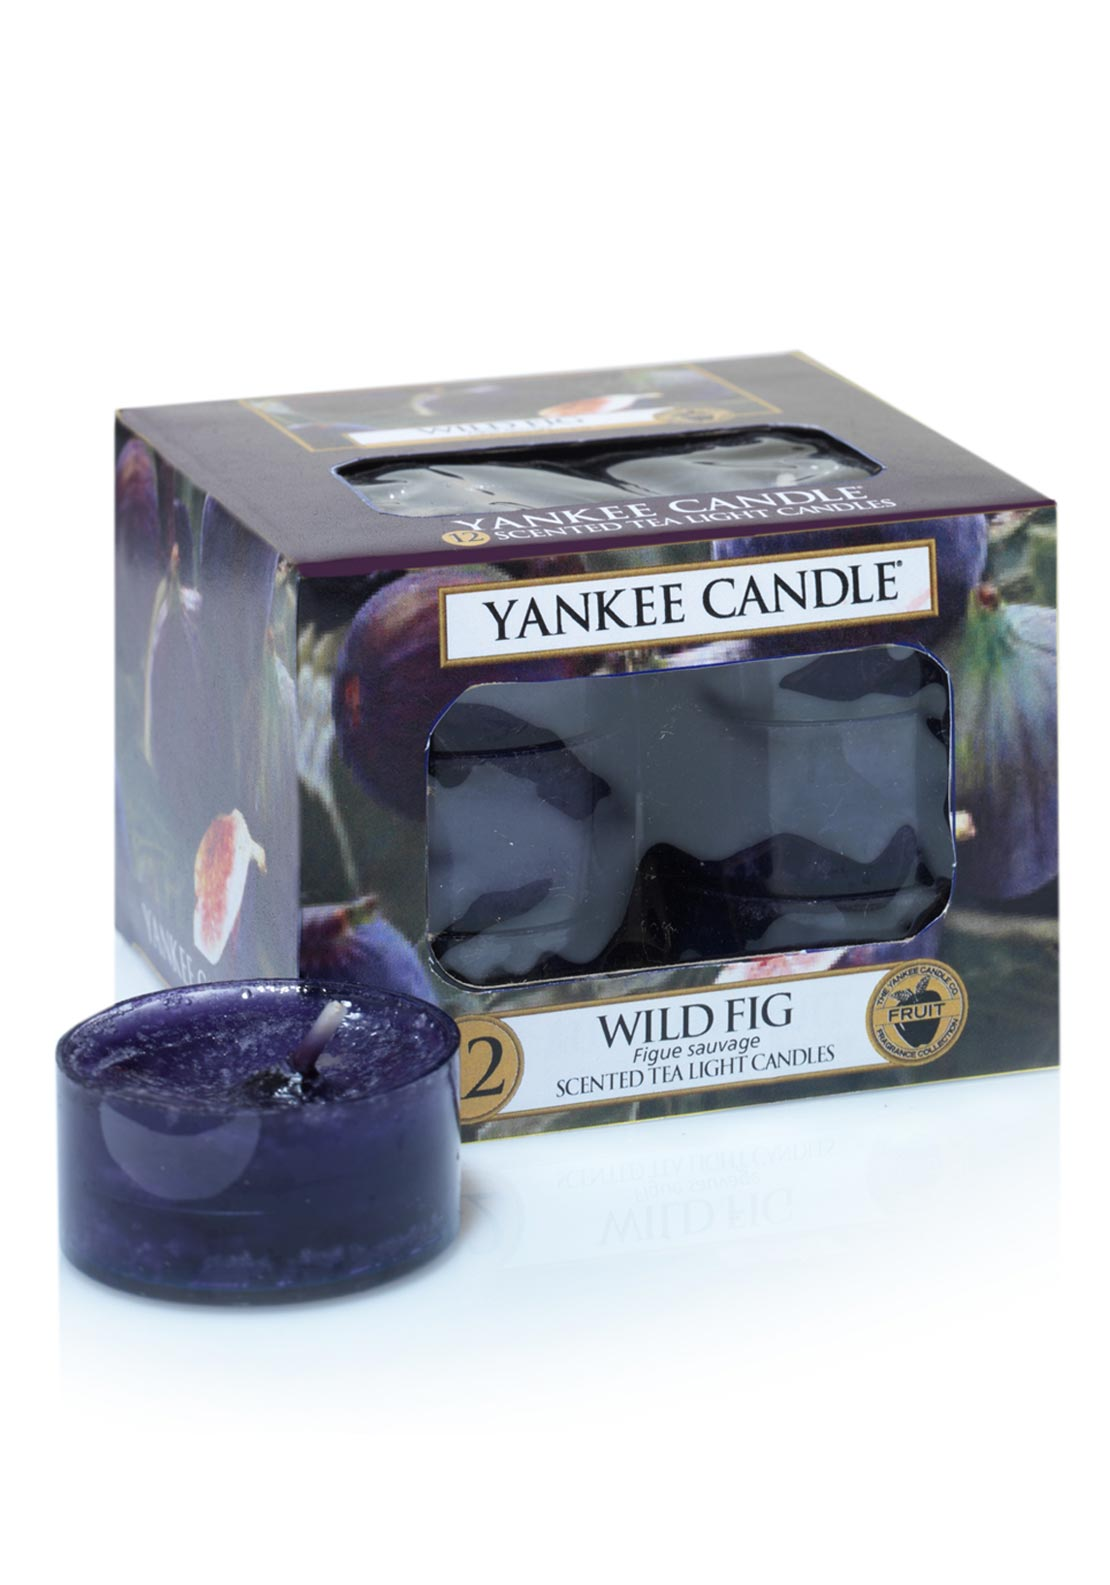 Yankee Candle 12 Scented Tea Light Candles, Wild Fig